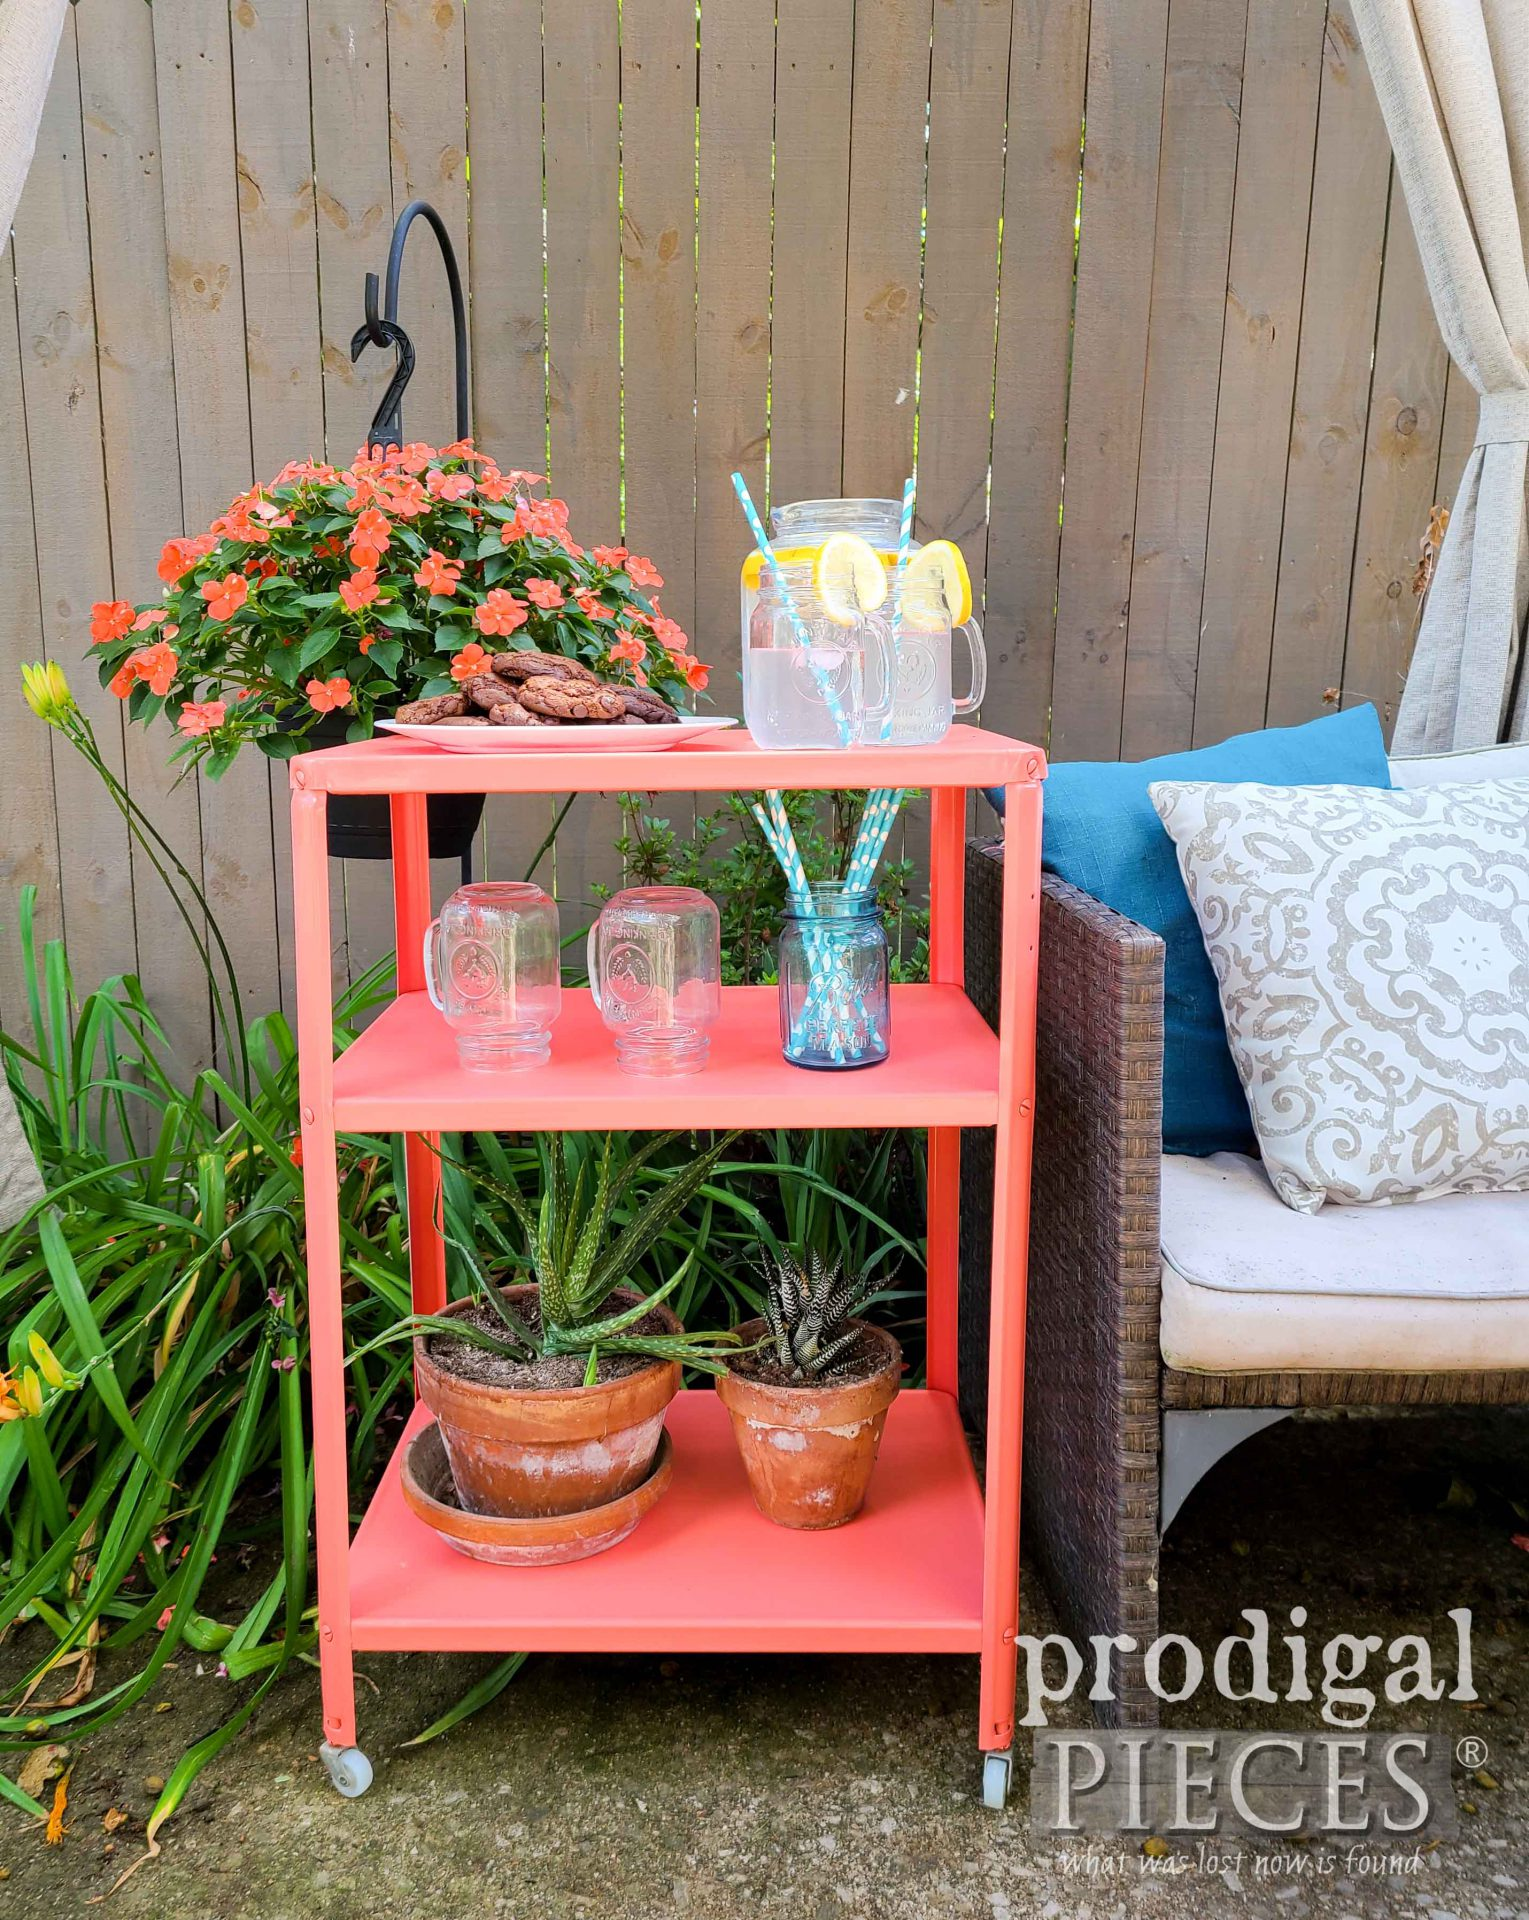 Vintage Entertaining Serving Cart by Larissa of Prodigal Pieces | prodigalpieces.com #prodigalpieces #farmhouse #home #homedecor #furniture